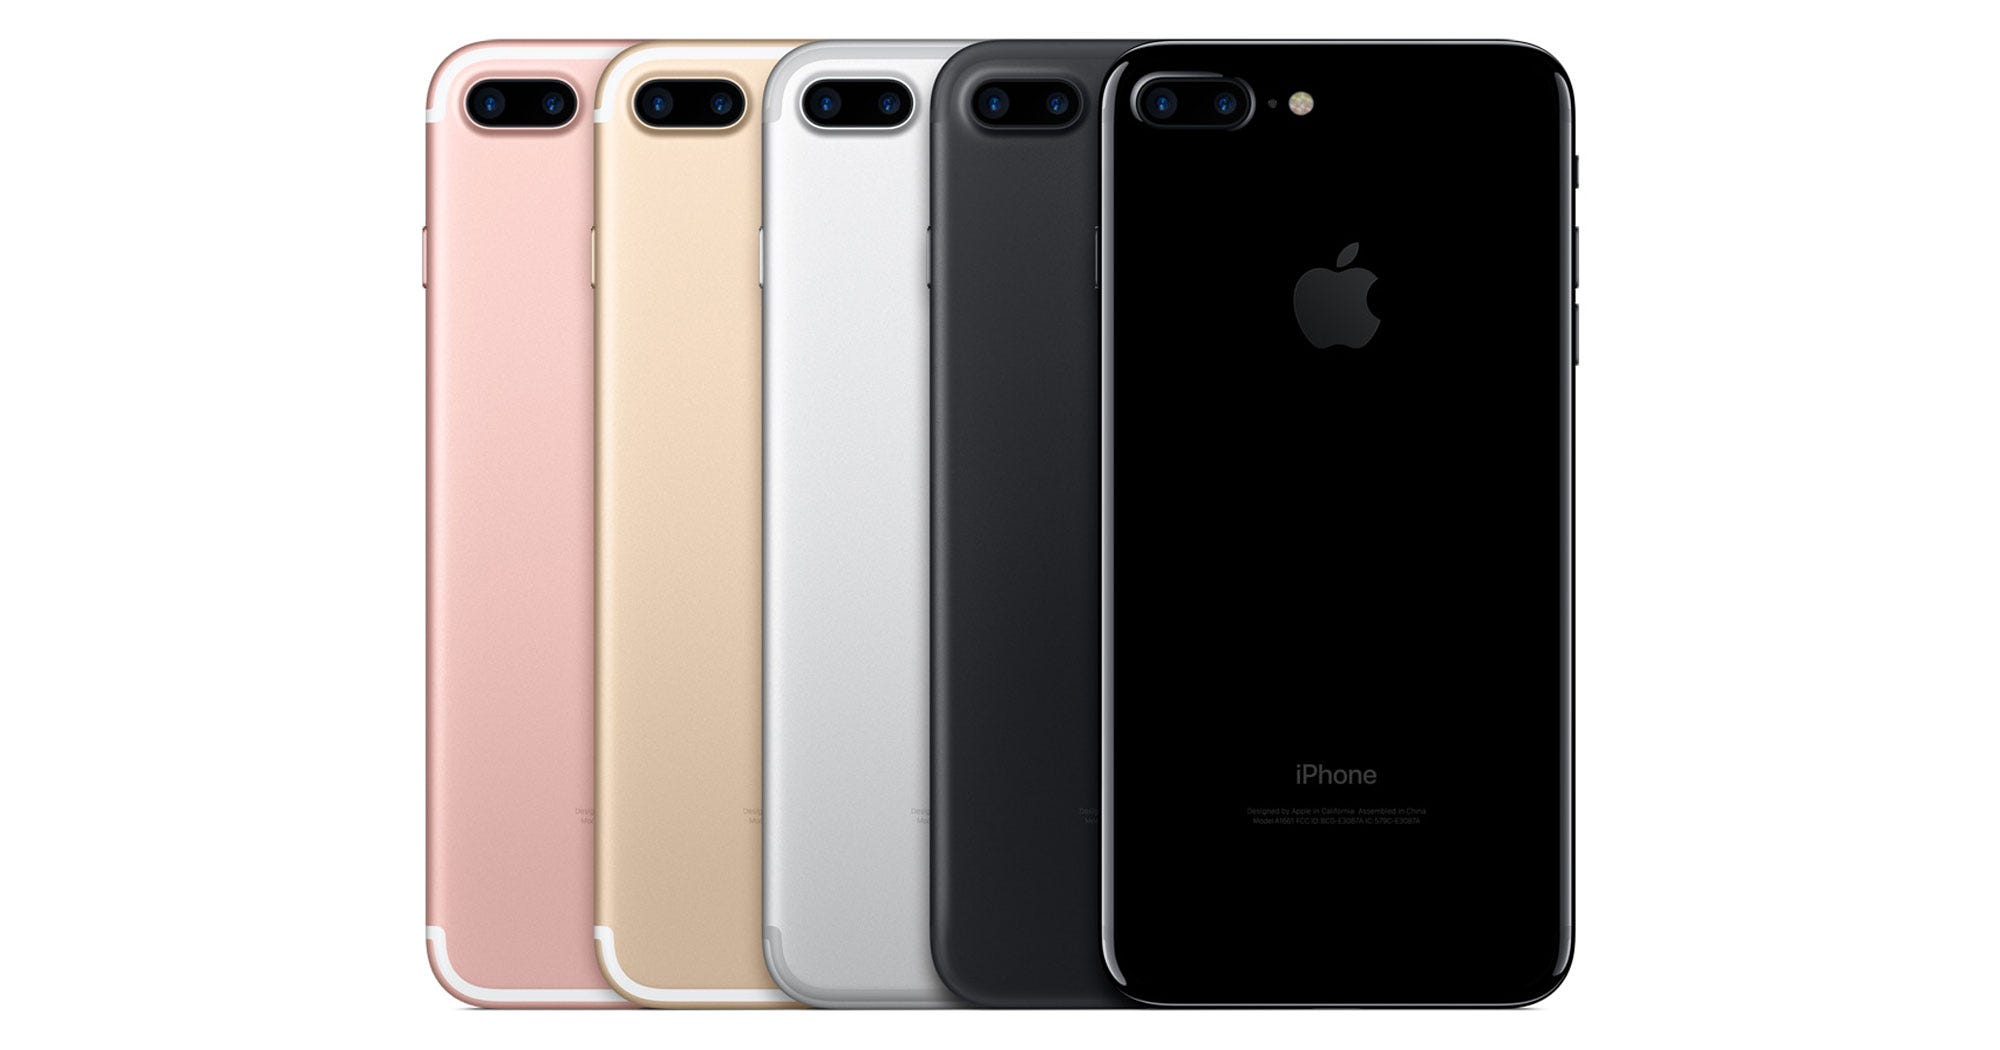 apple iphone announcement iphone 7 announcement september apple event details 10107